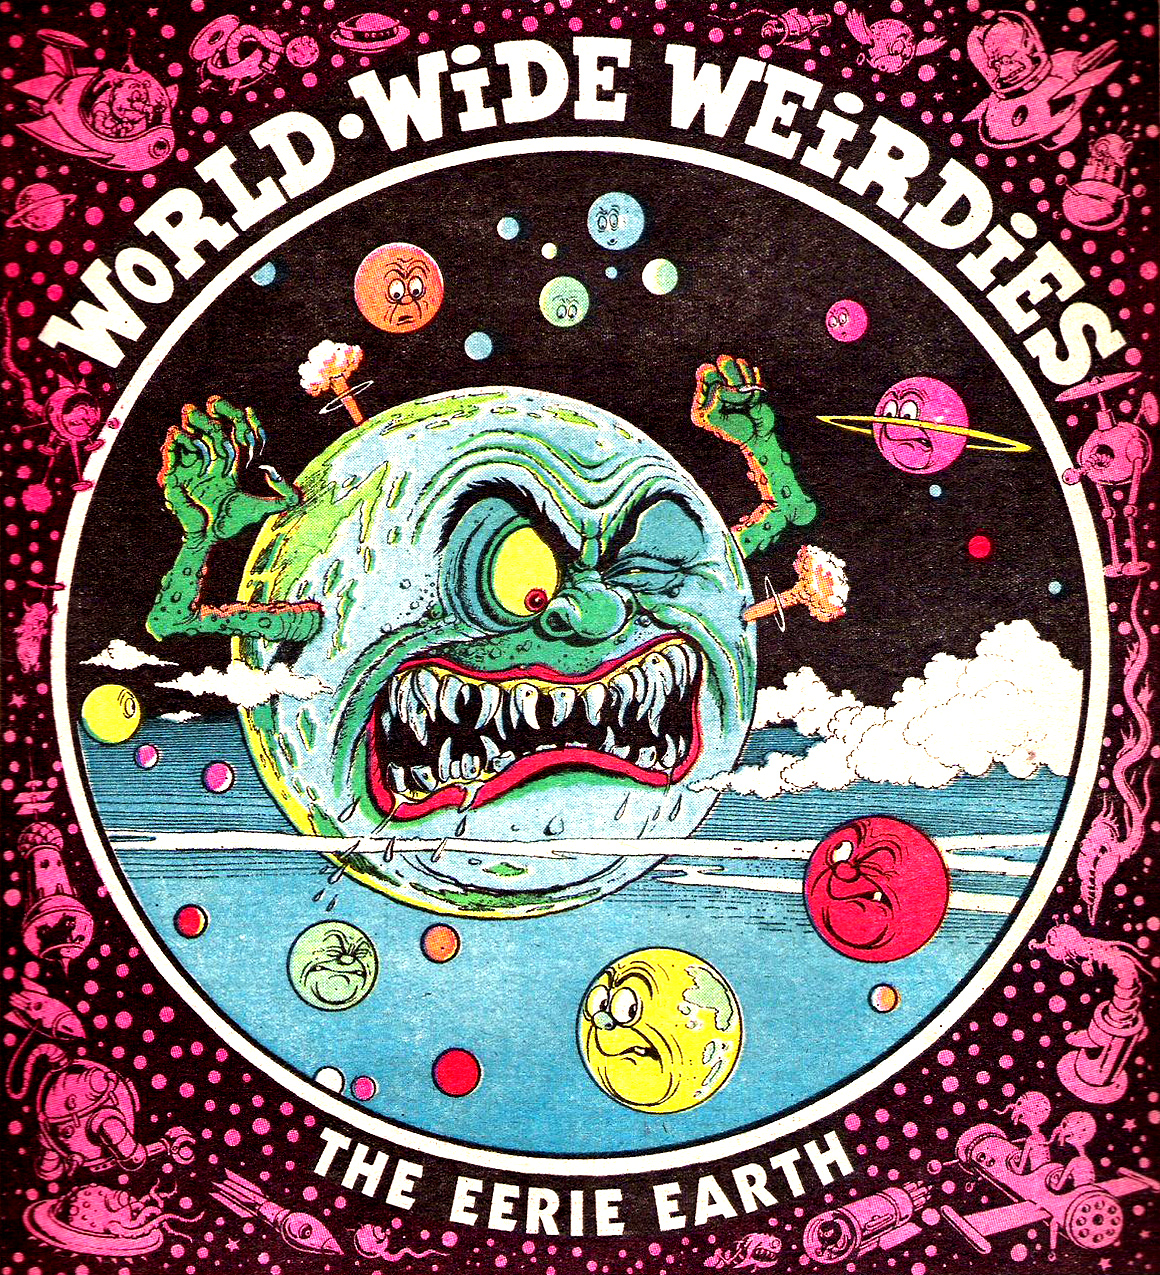 Ken Reid - World Wide Weirdies 84